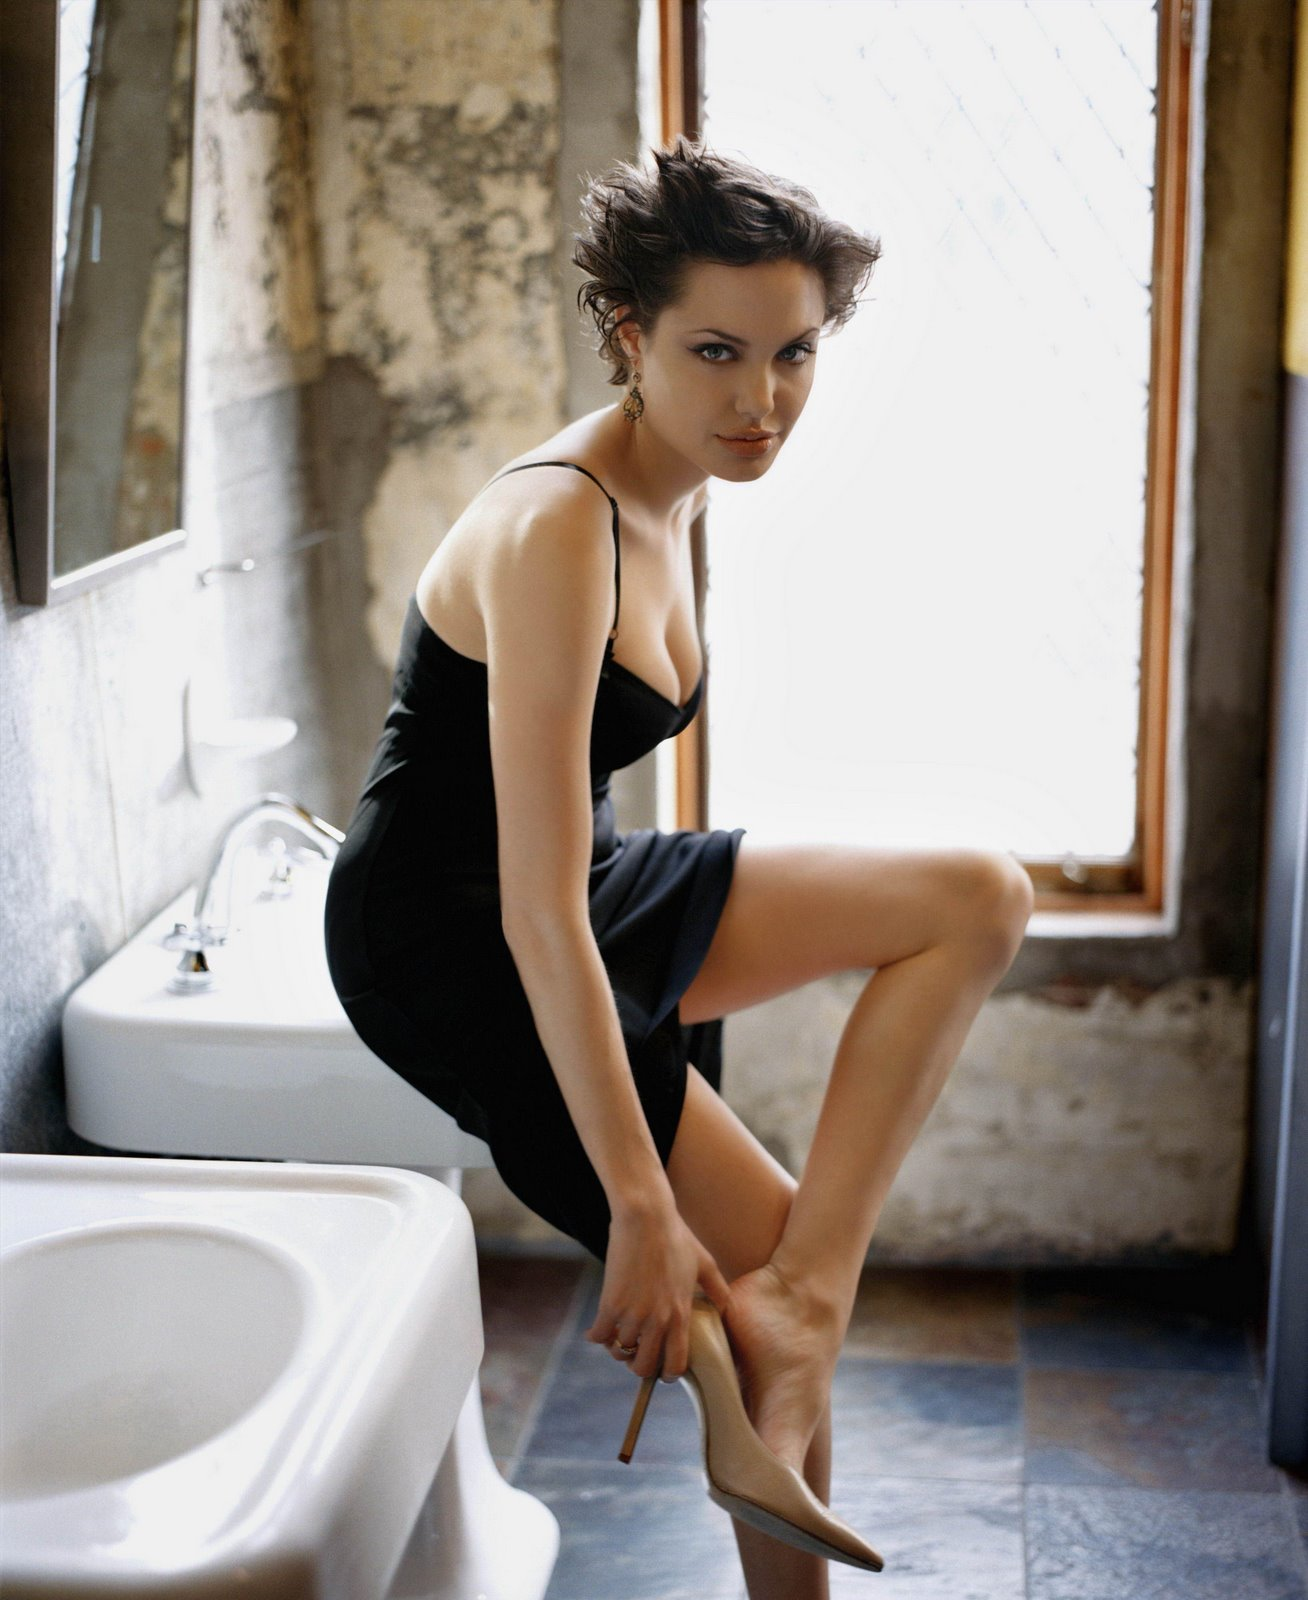 http://2.bp.blogspot.com/_MZeh3uFaOnI/TAonfjVv4EI/AAAAAAAADJ0/VPsOFEhLrk4/s1600/short-hair-angelina-jolie-black-dress-bathroom.jpg